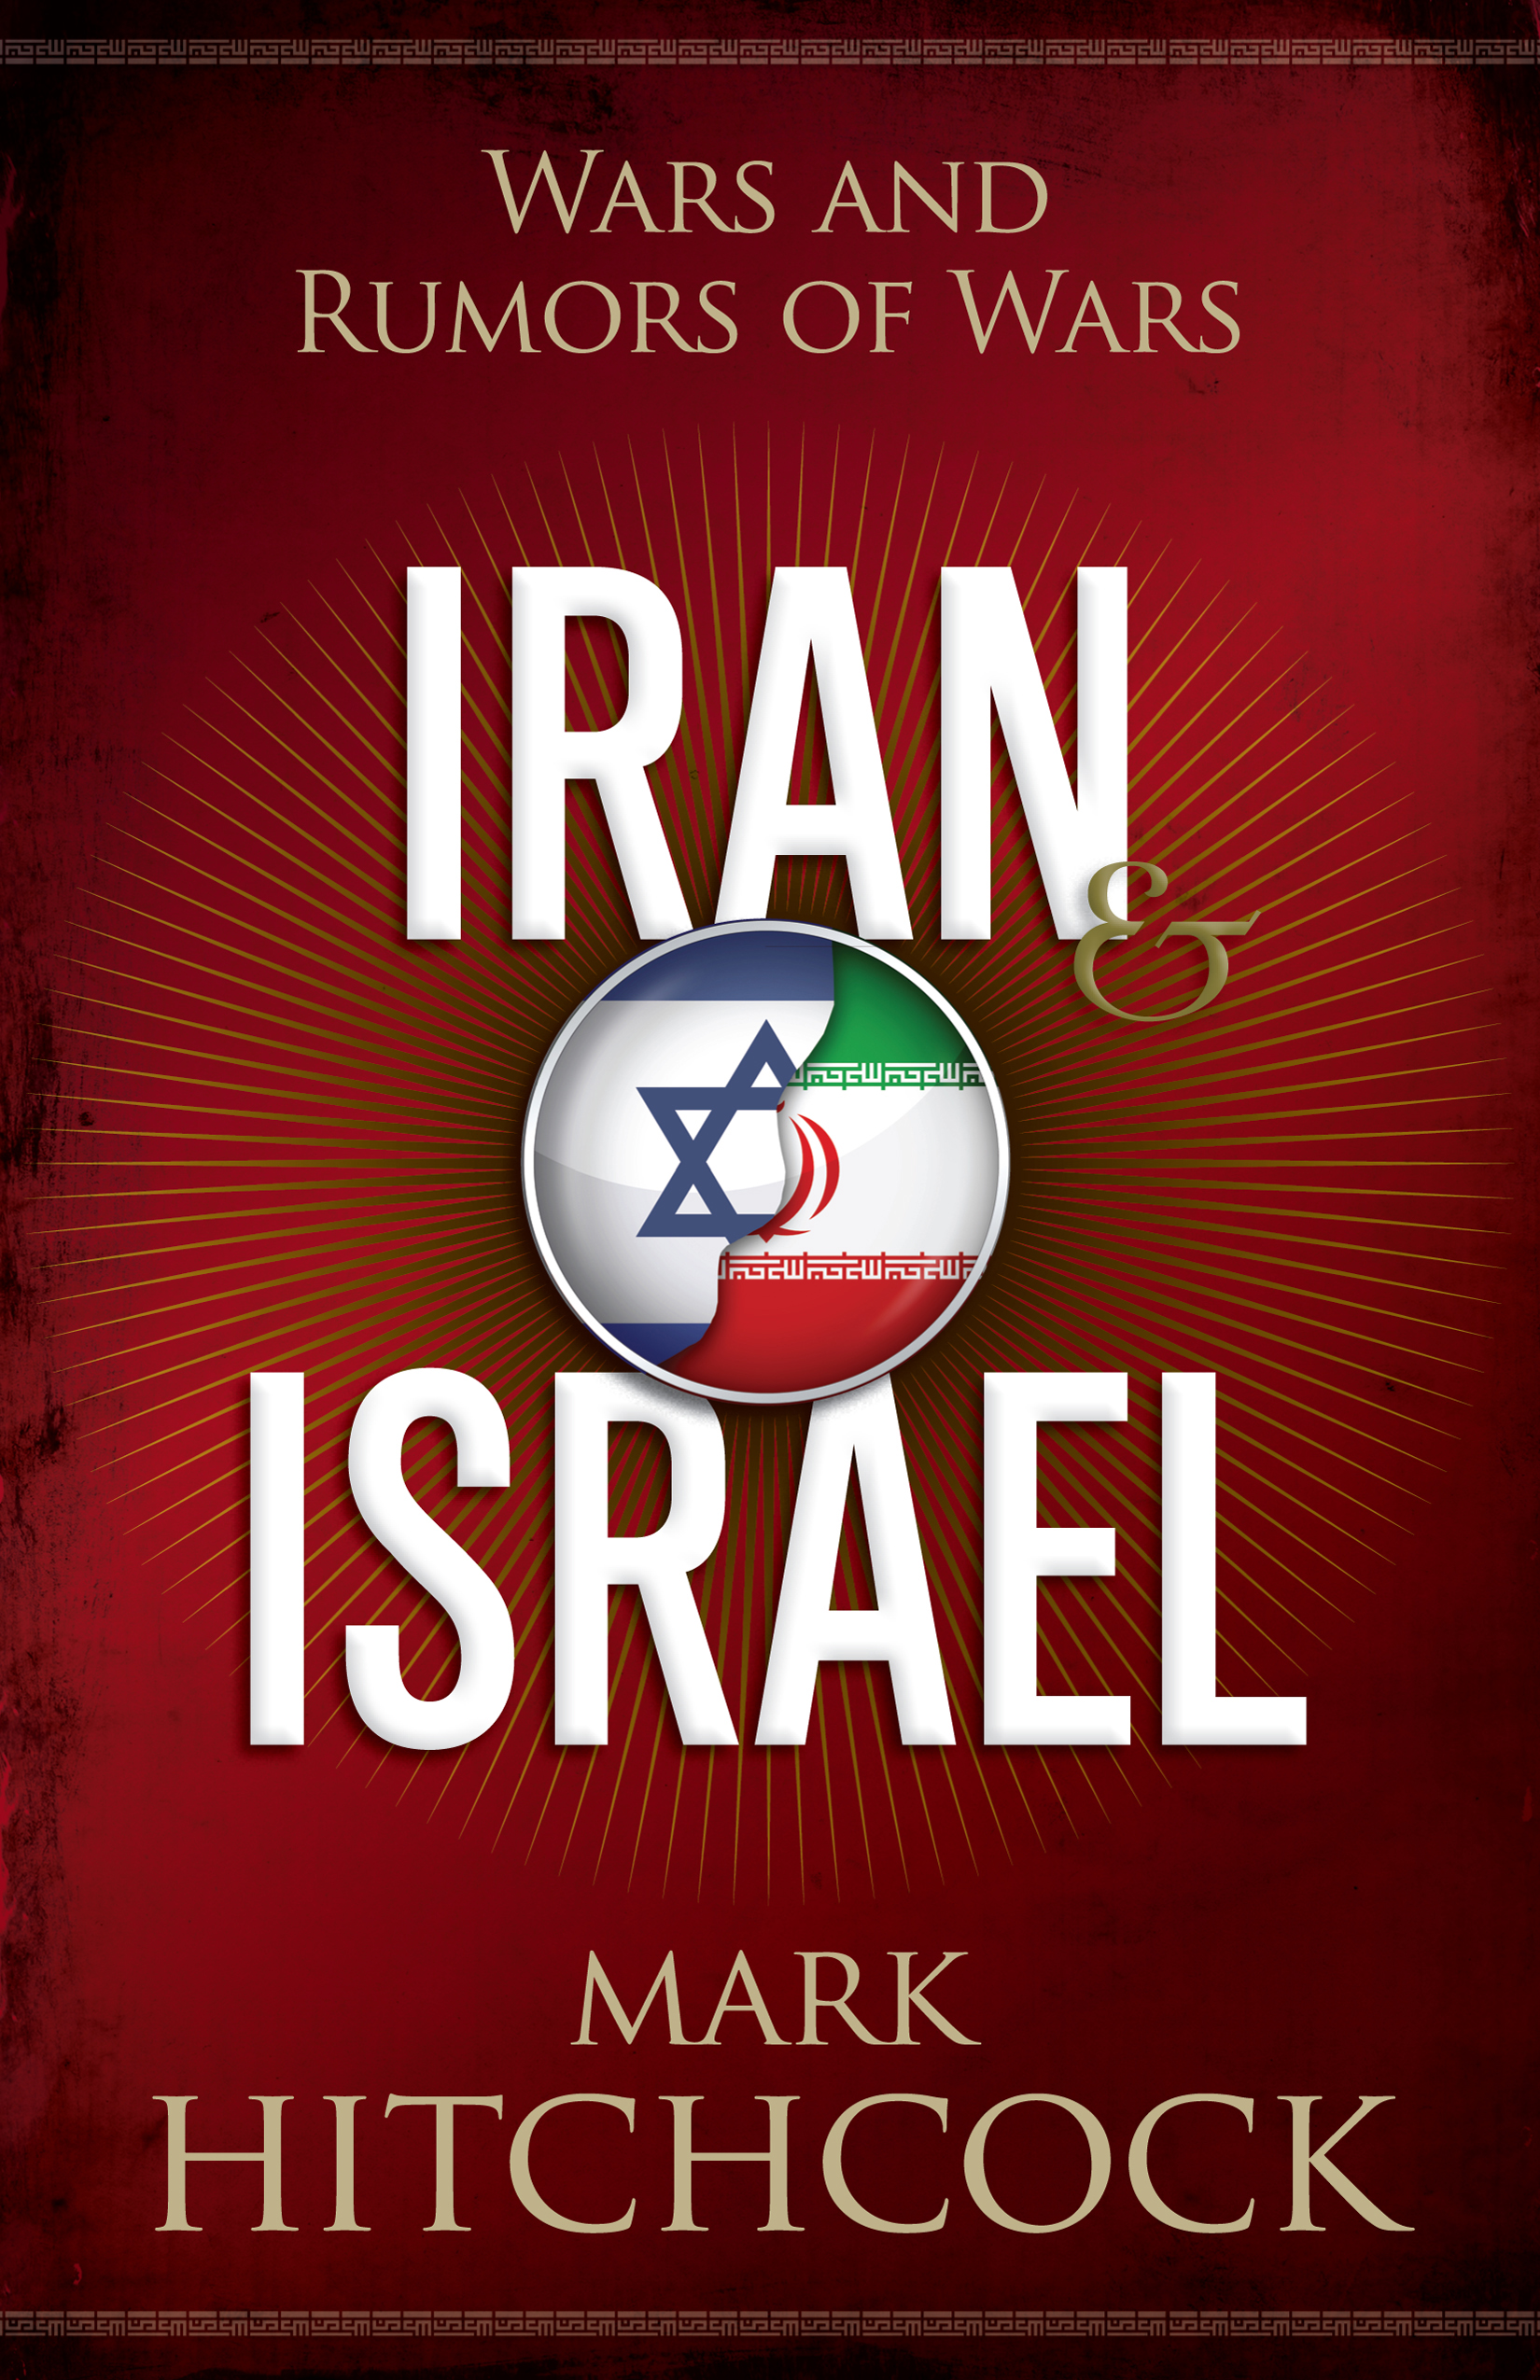 Iran and Israel